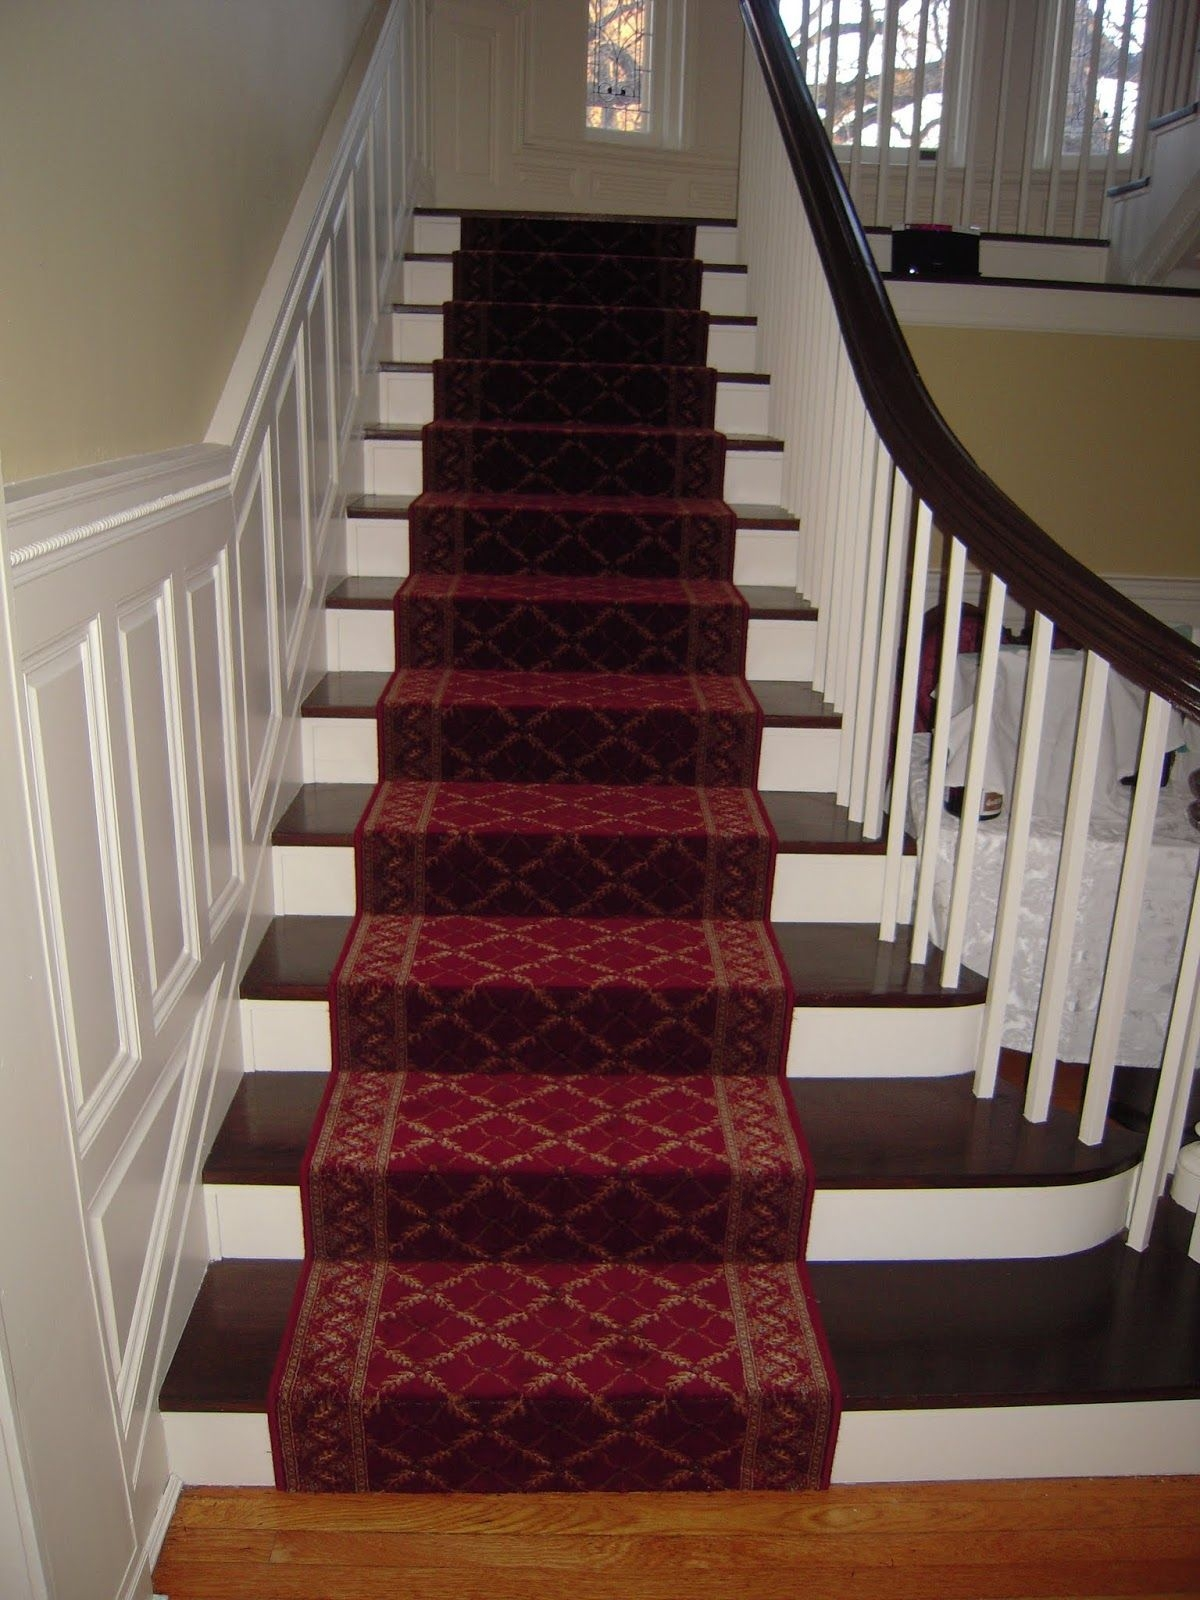 Flooring Pretty Stair Treads Carpet For Stair Decoration Idea For Stair Tread Carpet Runners (#8 of 20)